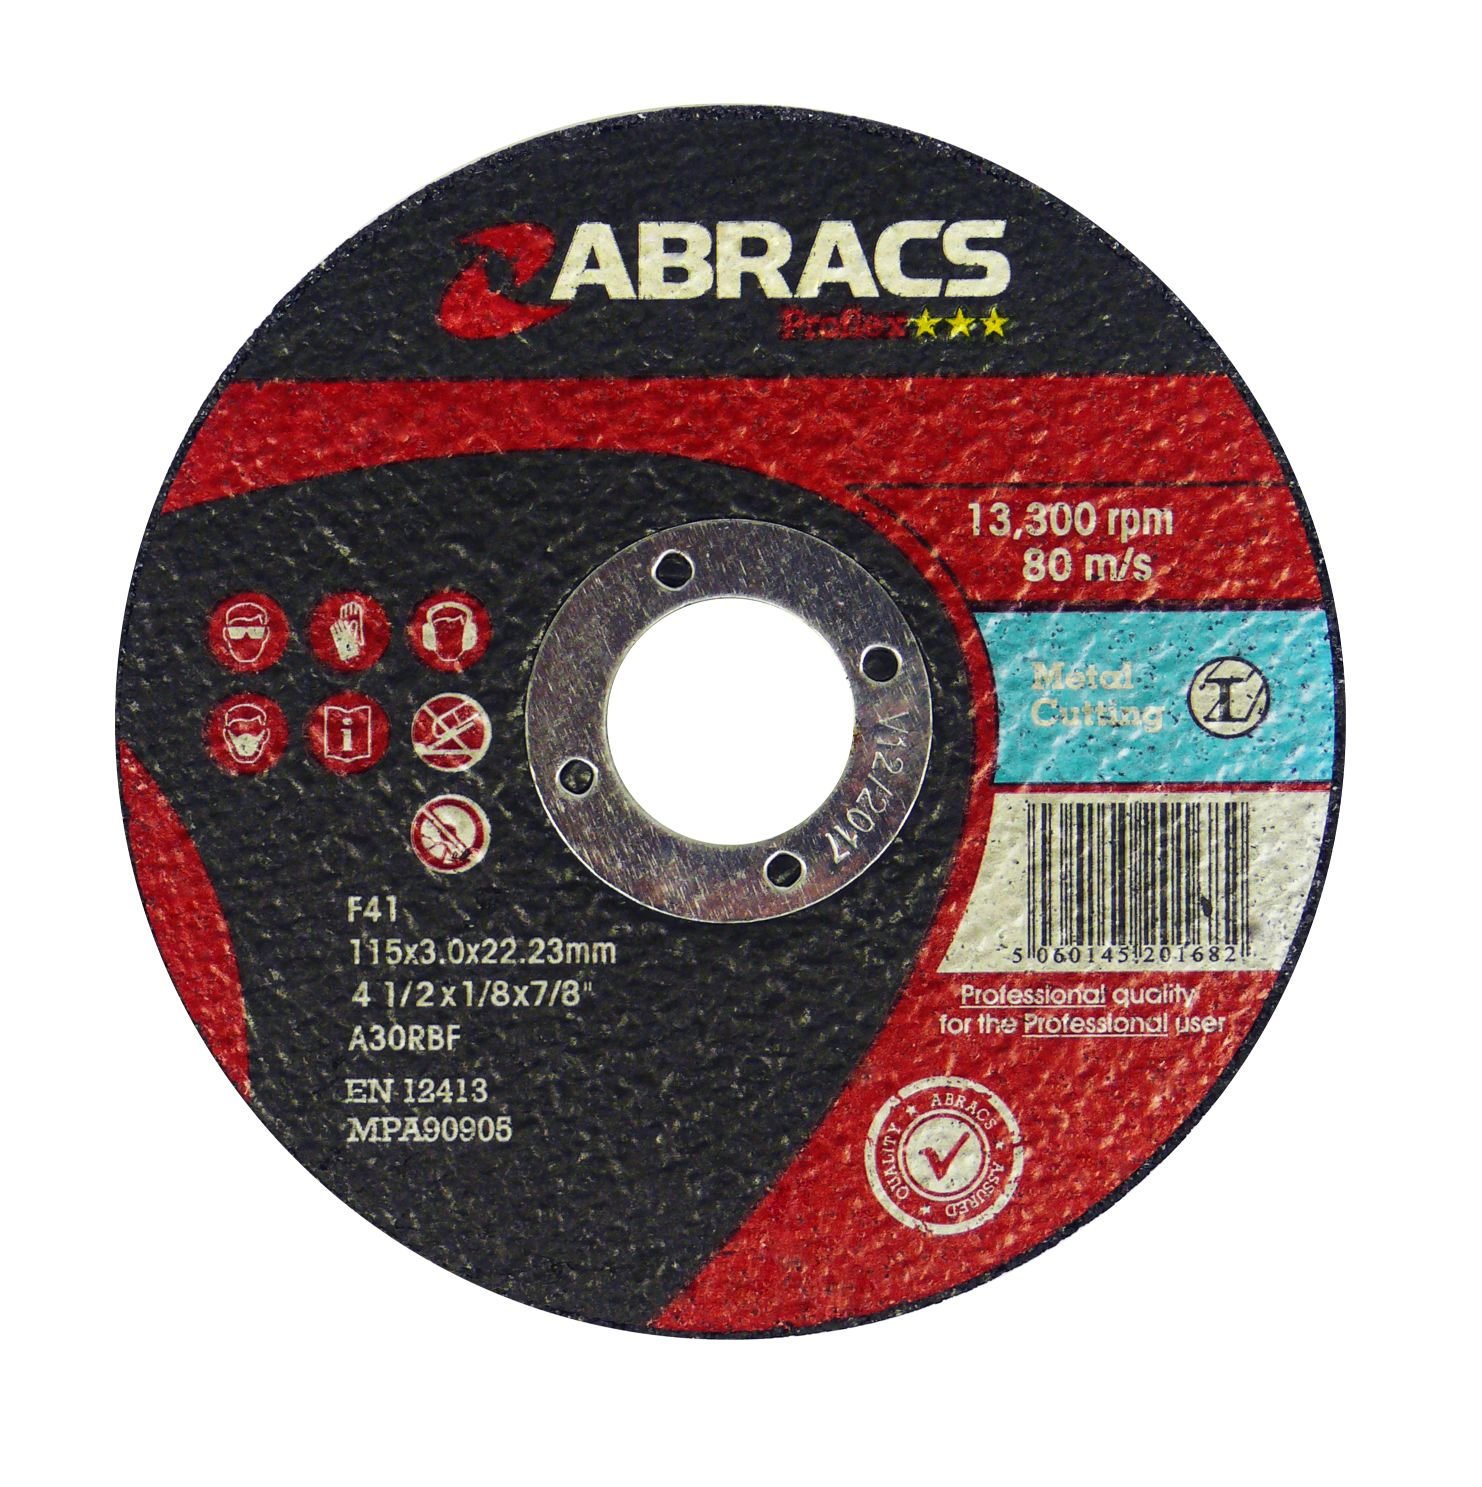 METAL CUTTING DISC - FLAT 300 X 3.5 X 22MM